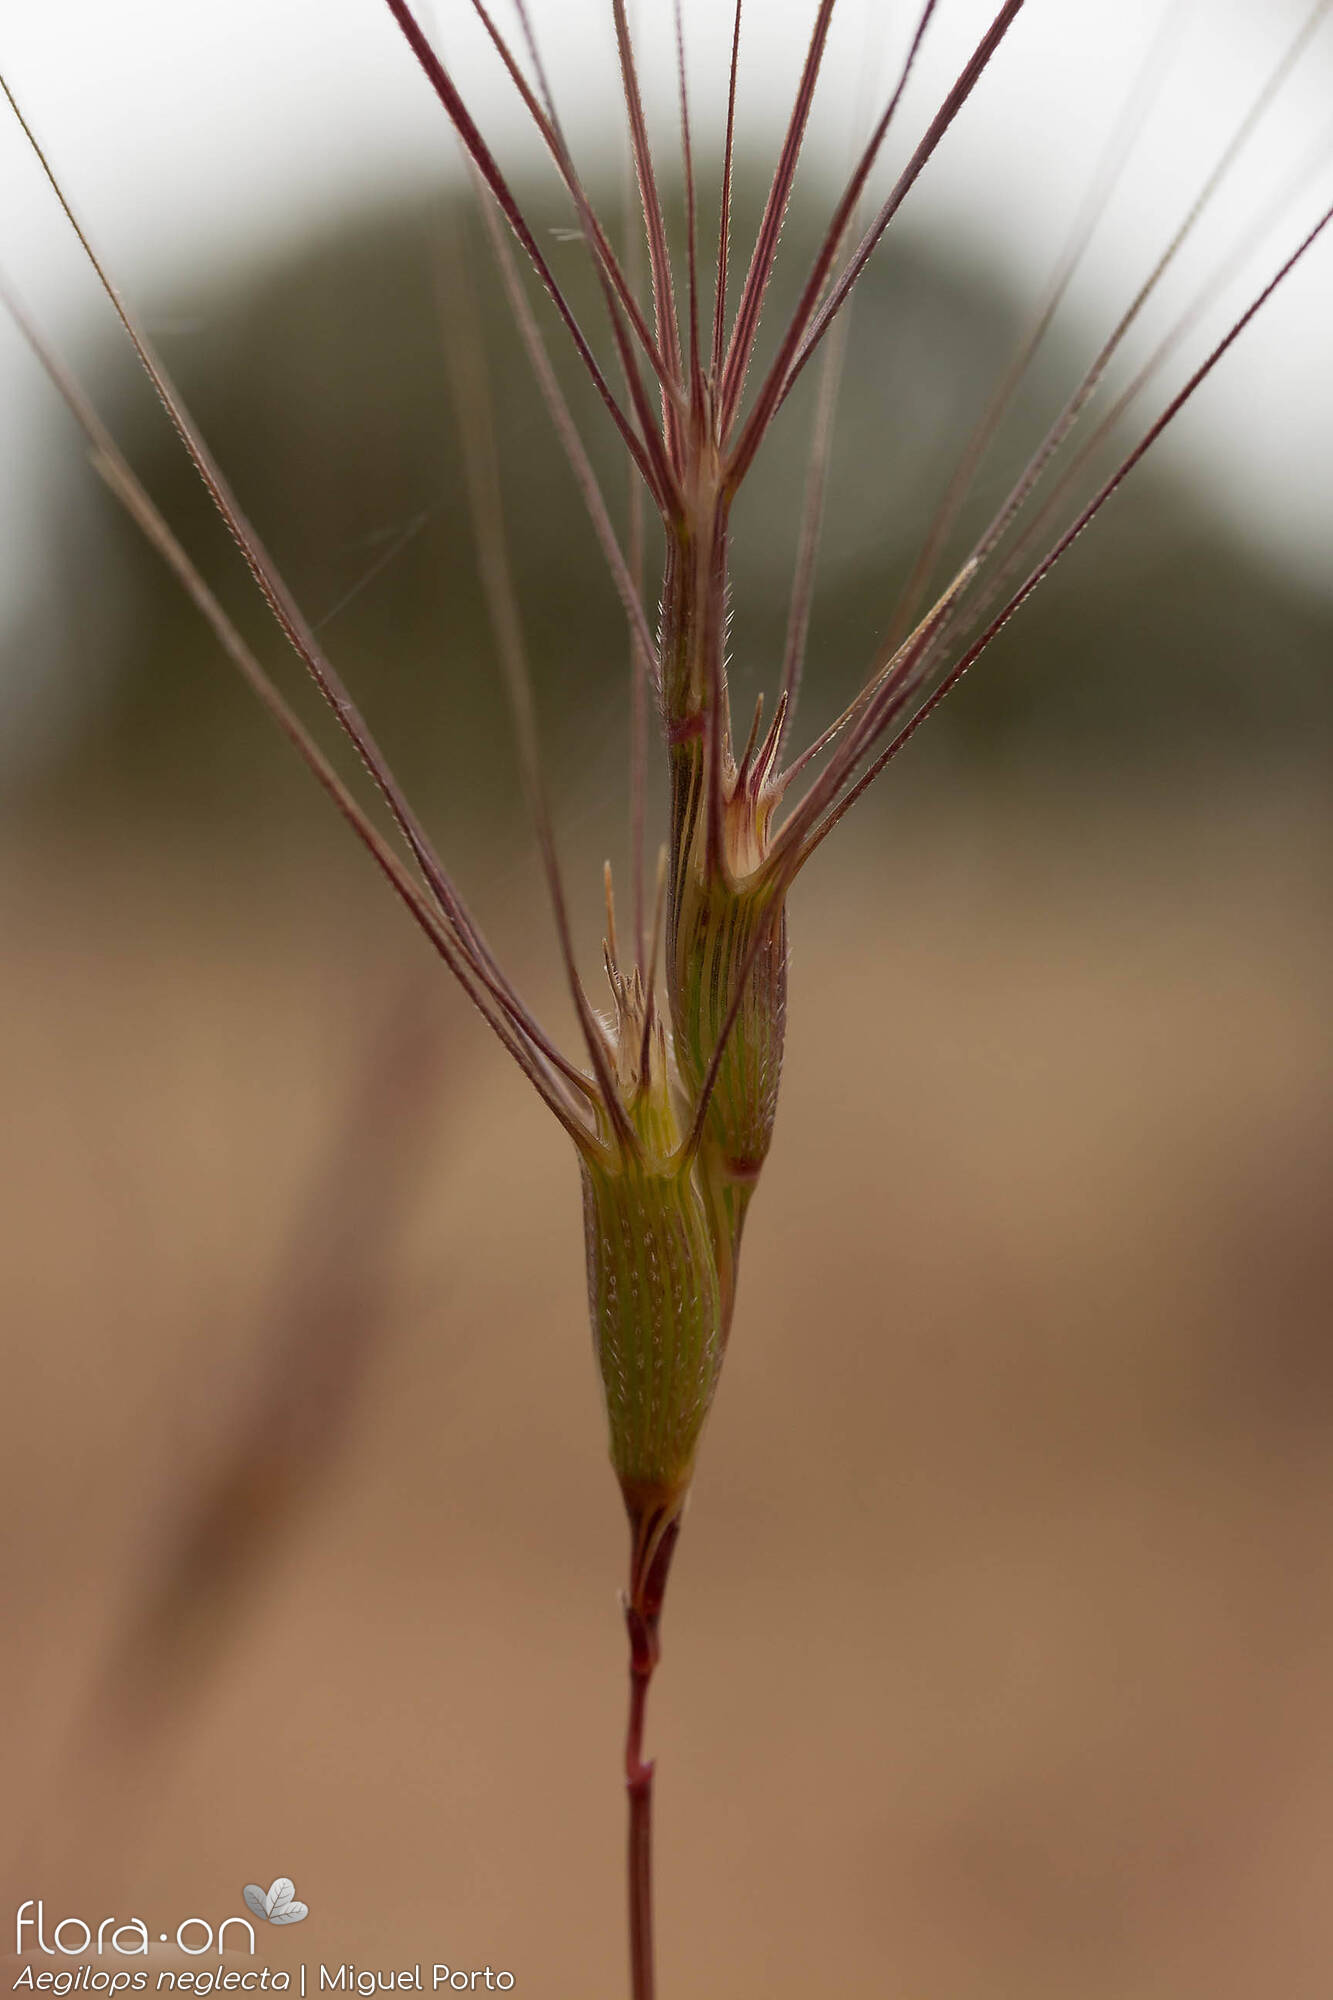 Aegilops neglecta - Flor (close-up) | Miguel Porto; CC BY-NC 4.0